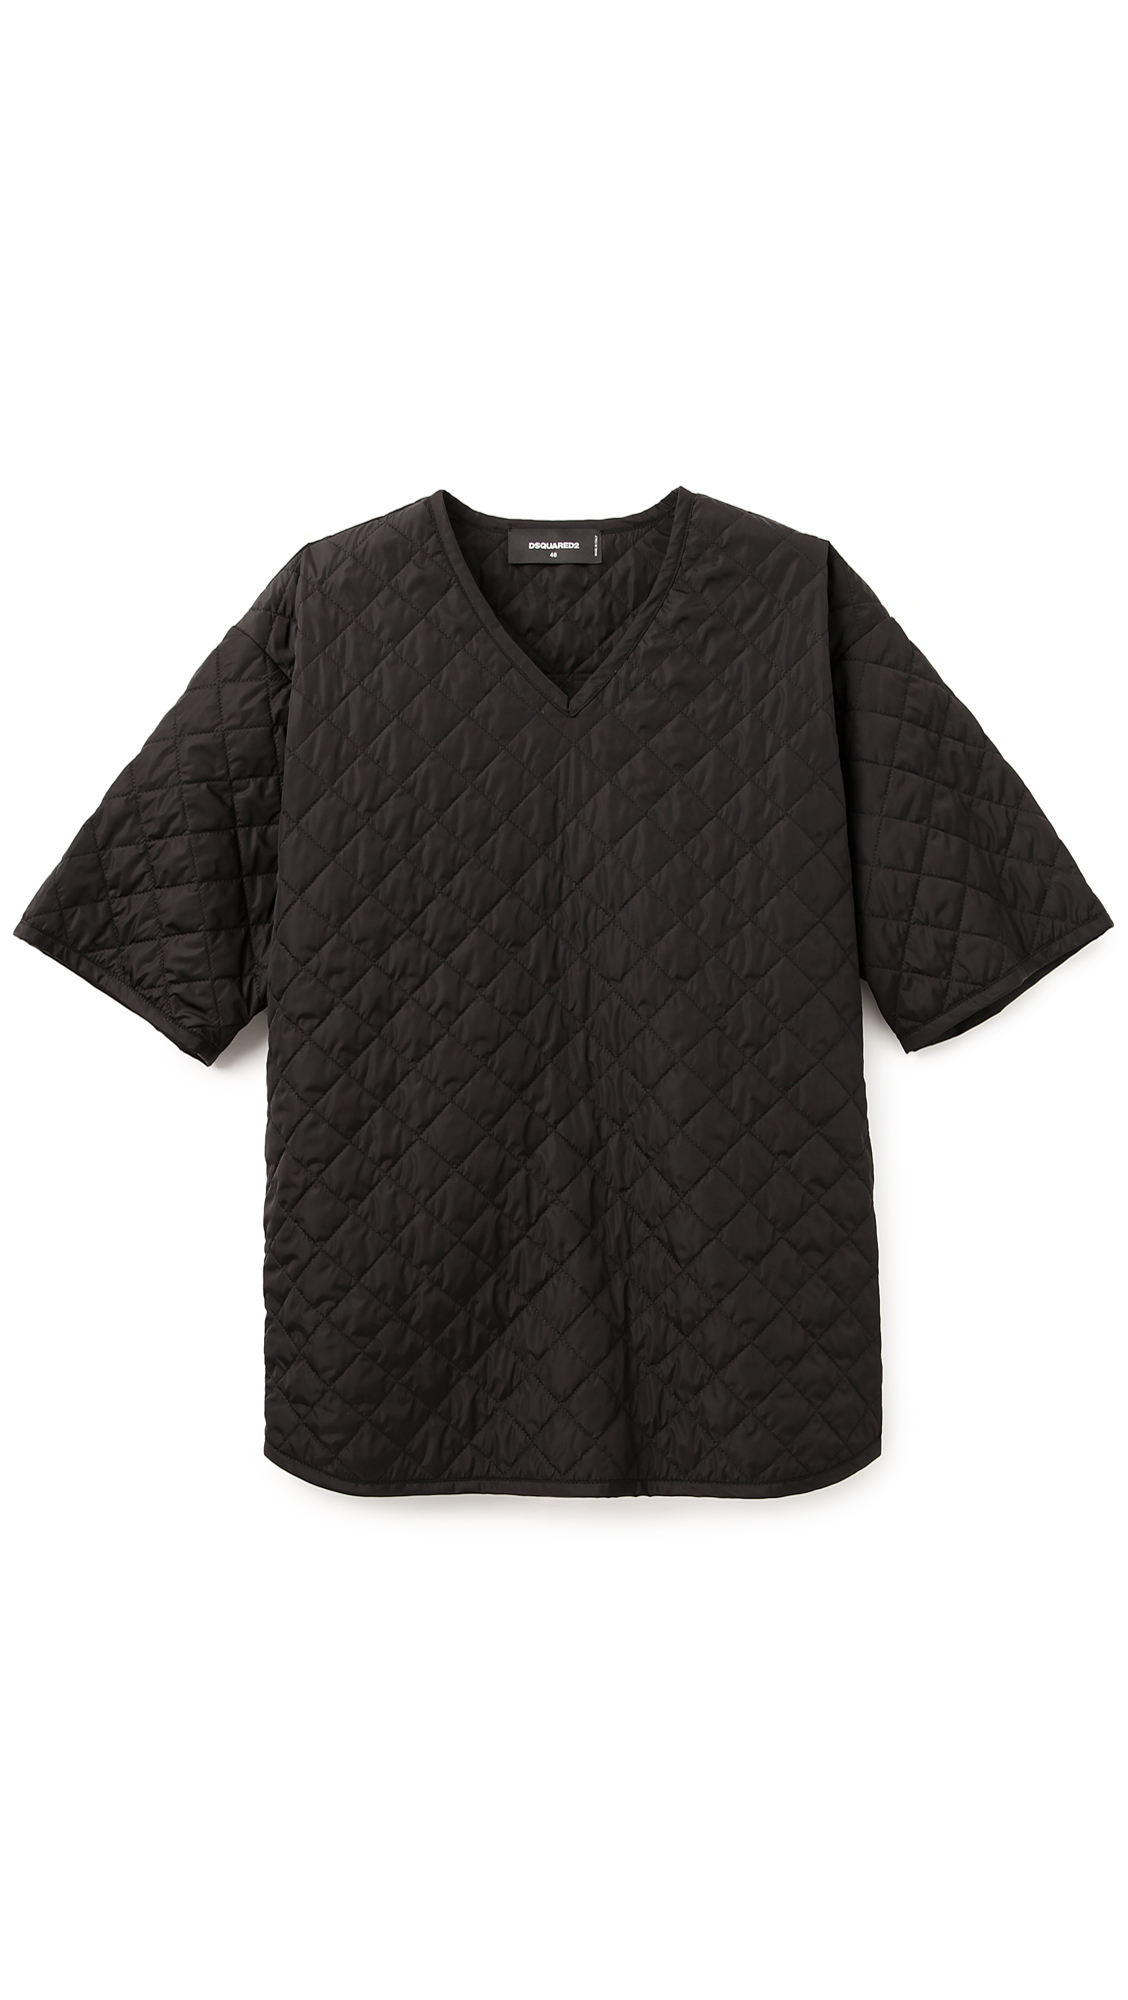 Black quilted t shirt - Black Quilted T Shirt Black Quilted T Shirt Gallery